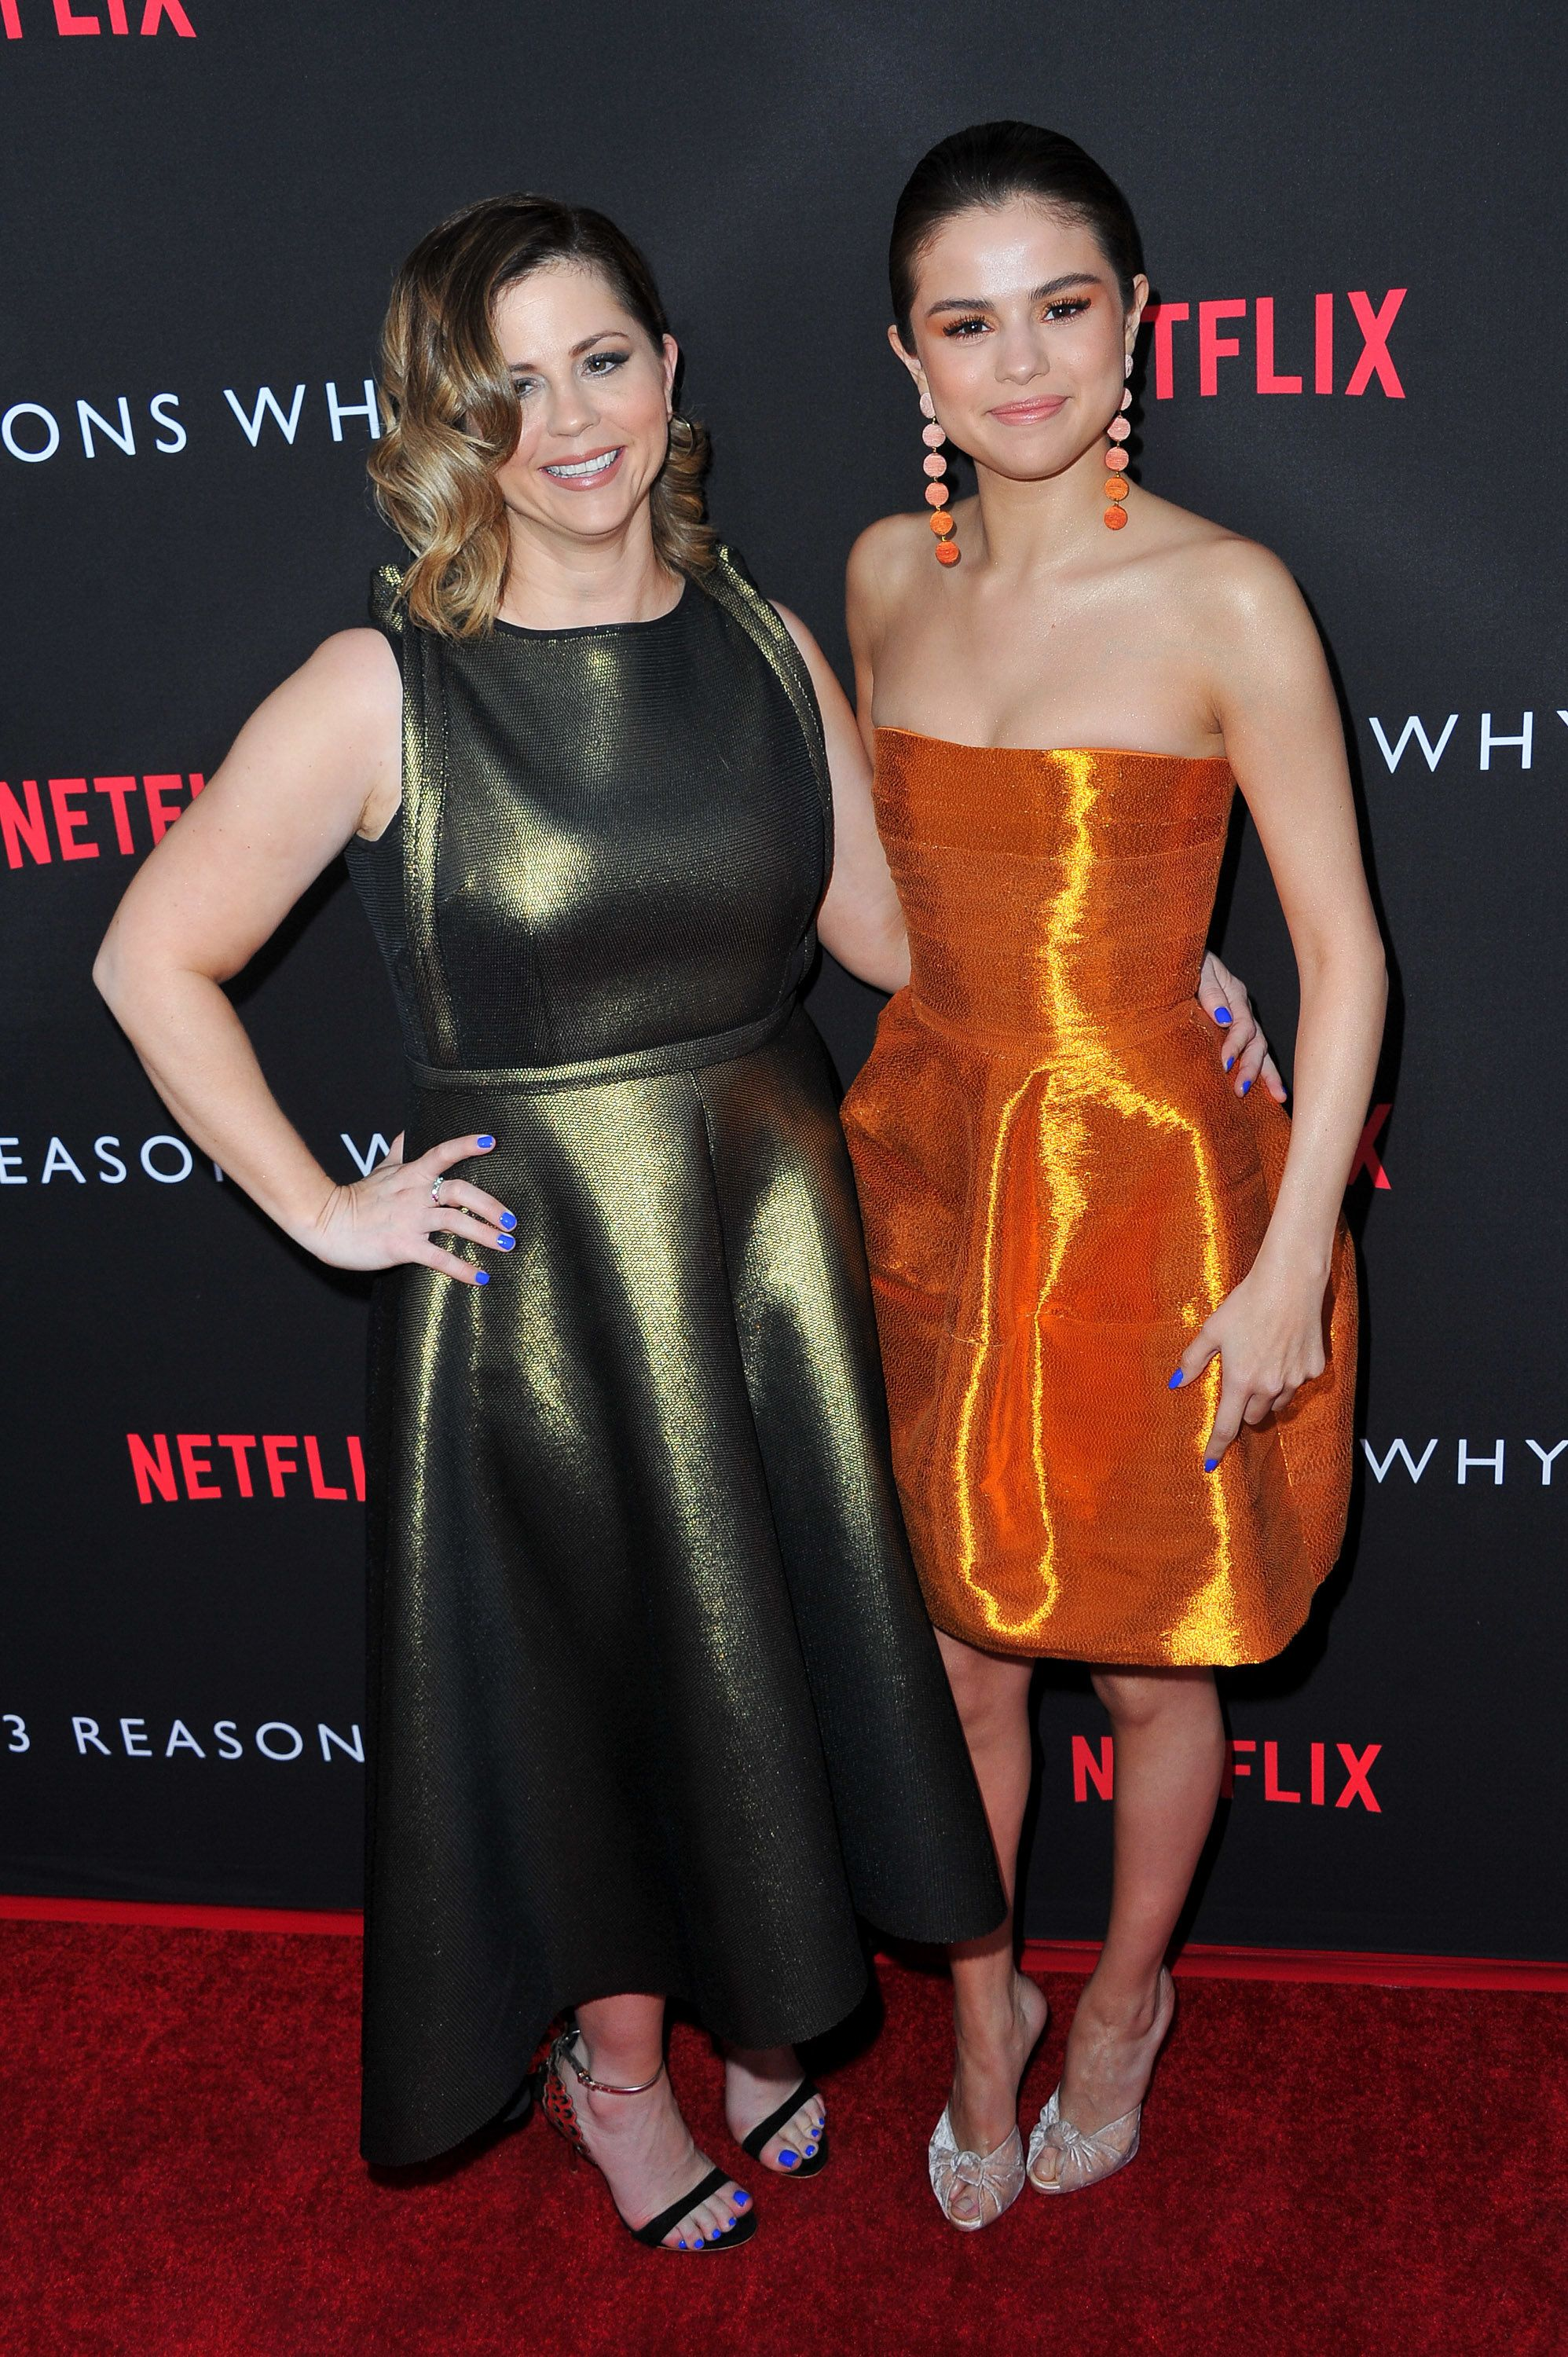 """Themom and daughter at the premiere of """"13 Reasons Why"""" on March 30, 2017."""